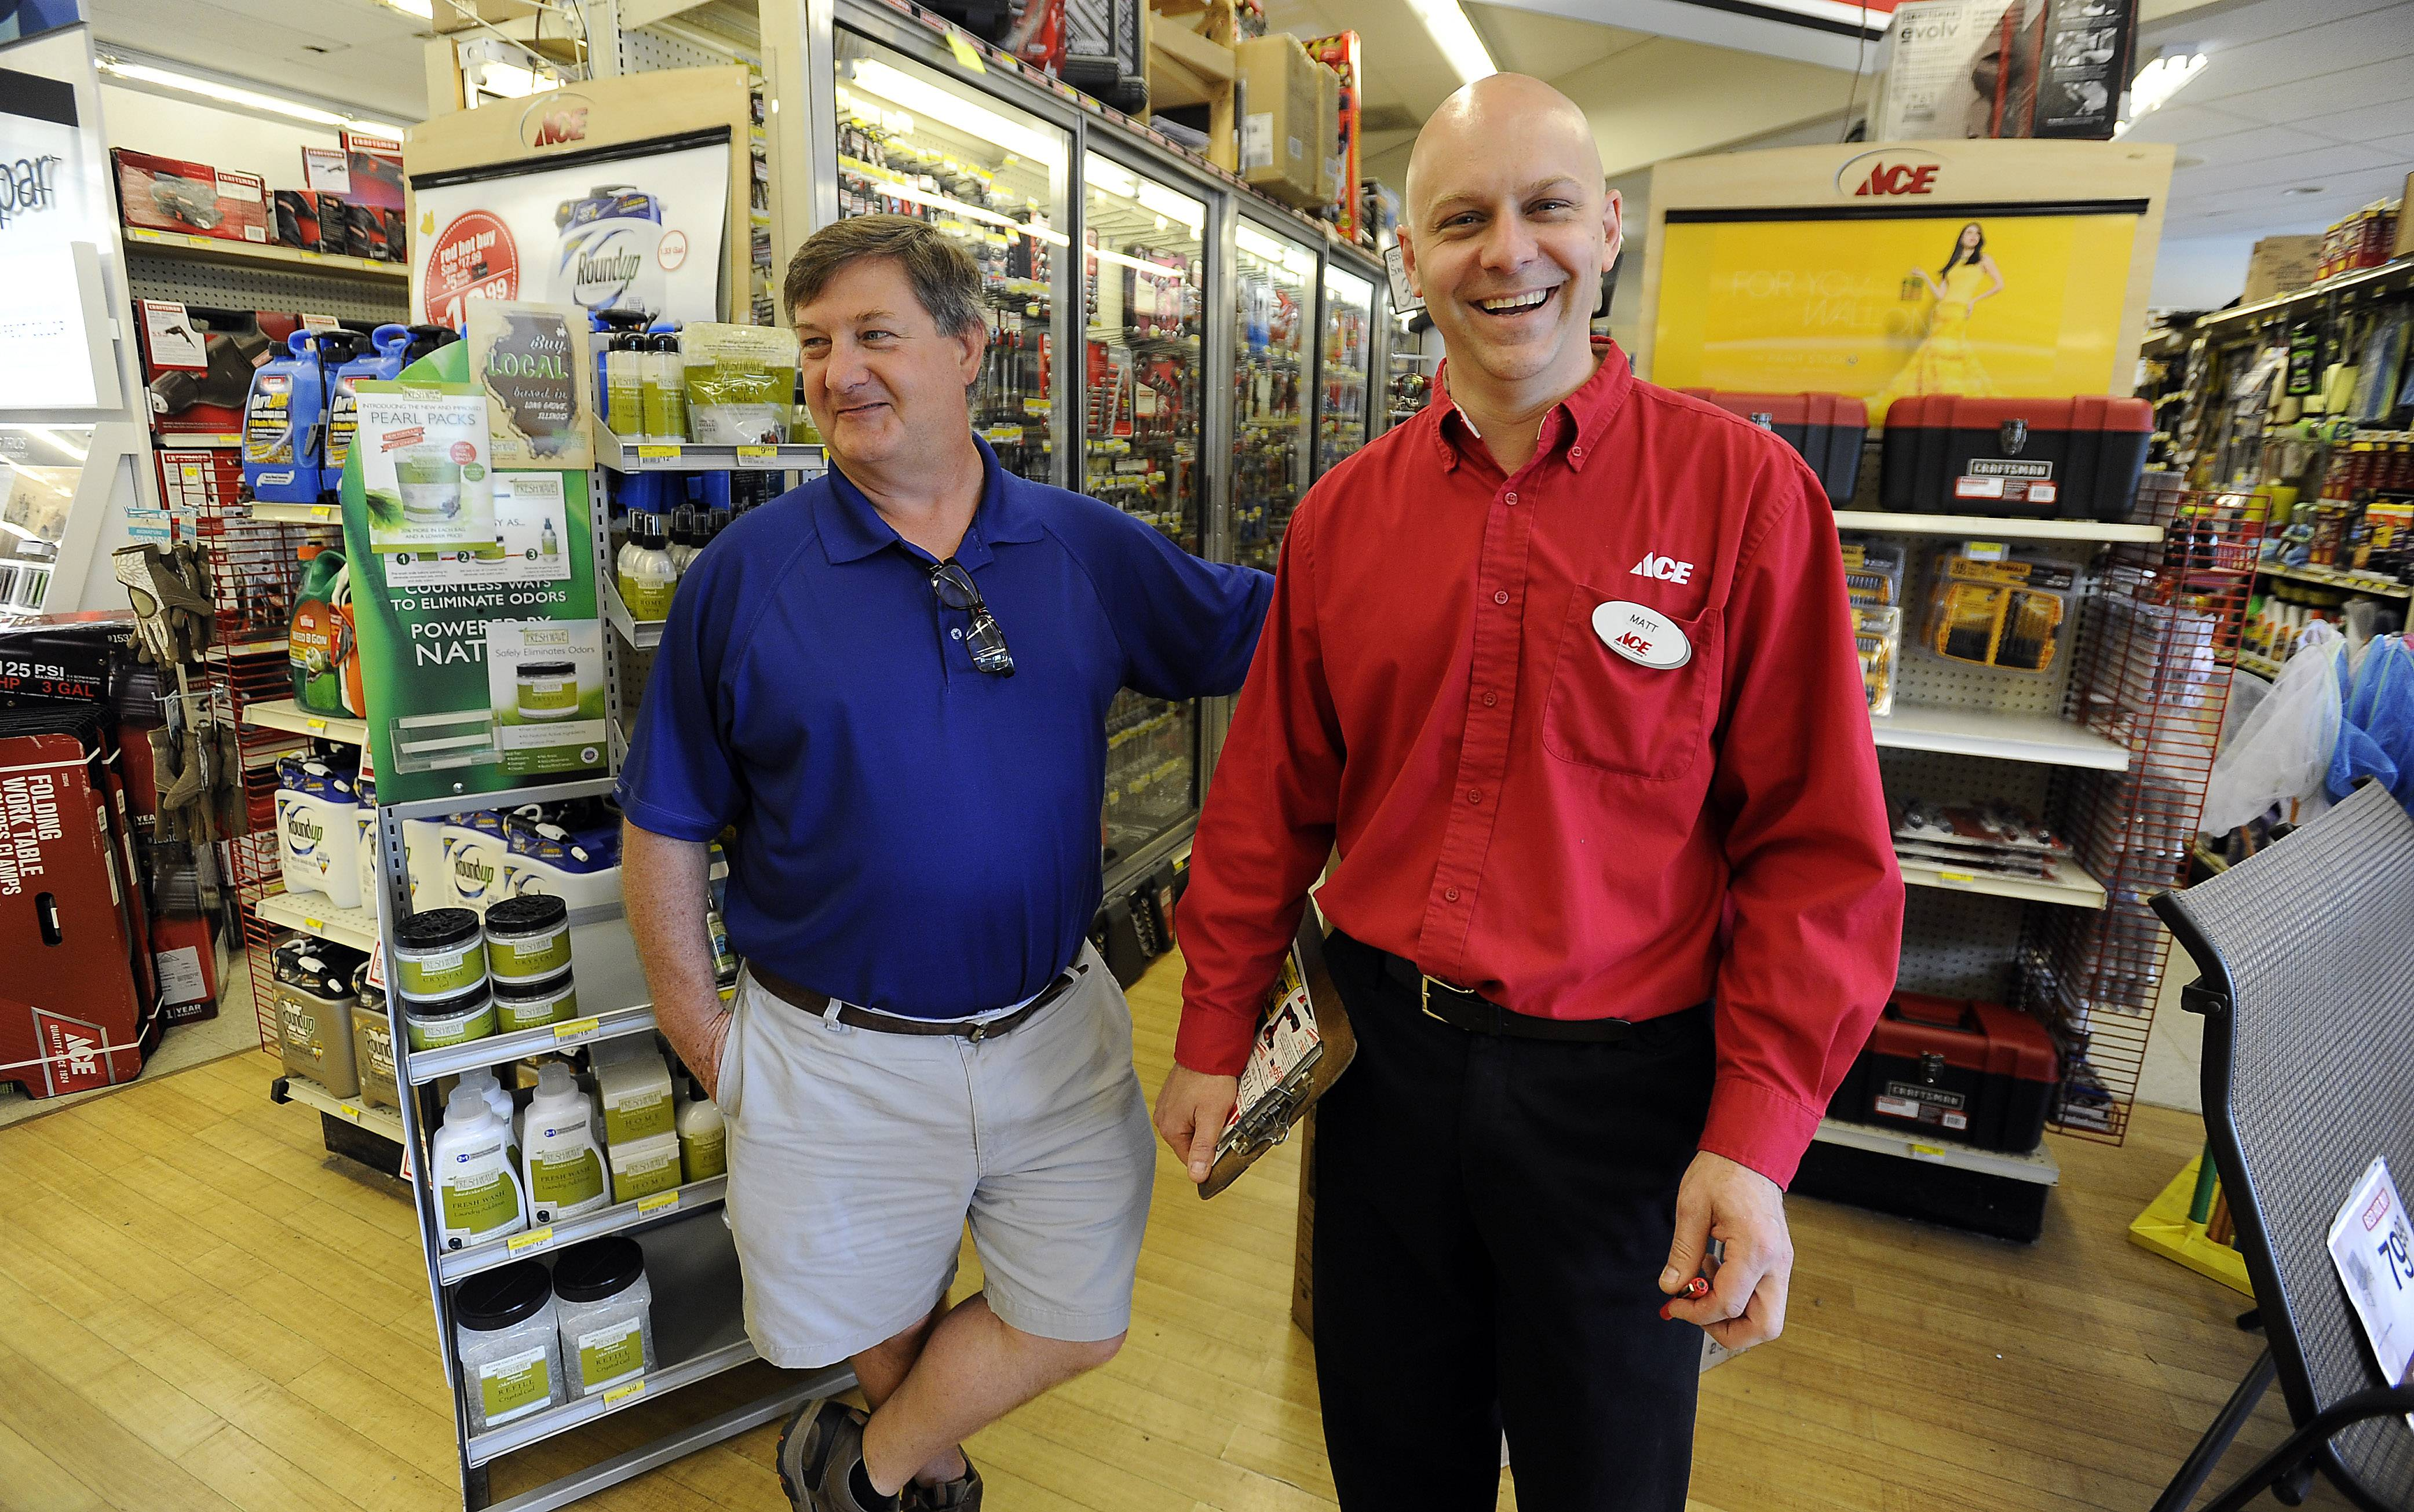 Sherwin Ace Hardware owner Matt Hanson, right, stands with former owner Bob Ward. Hanson took over the business Jan. 1. Hanson, who was once the pupil, is now the teacher.